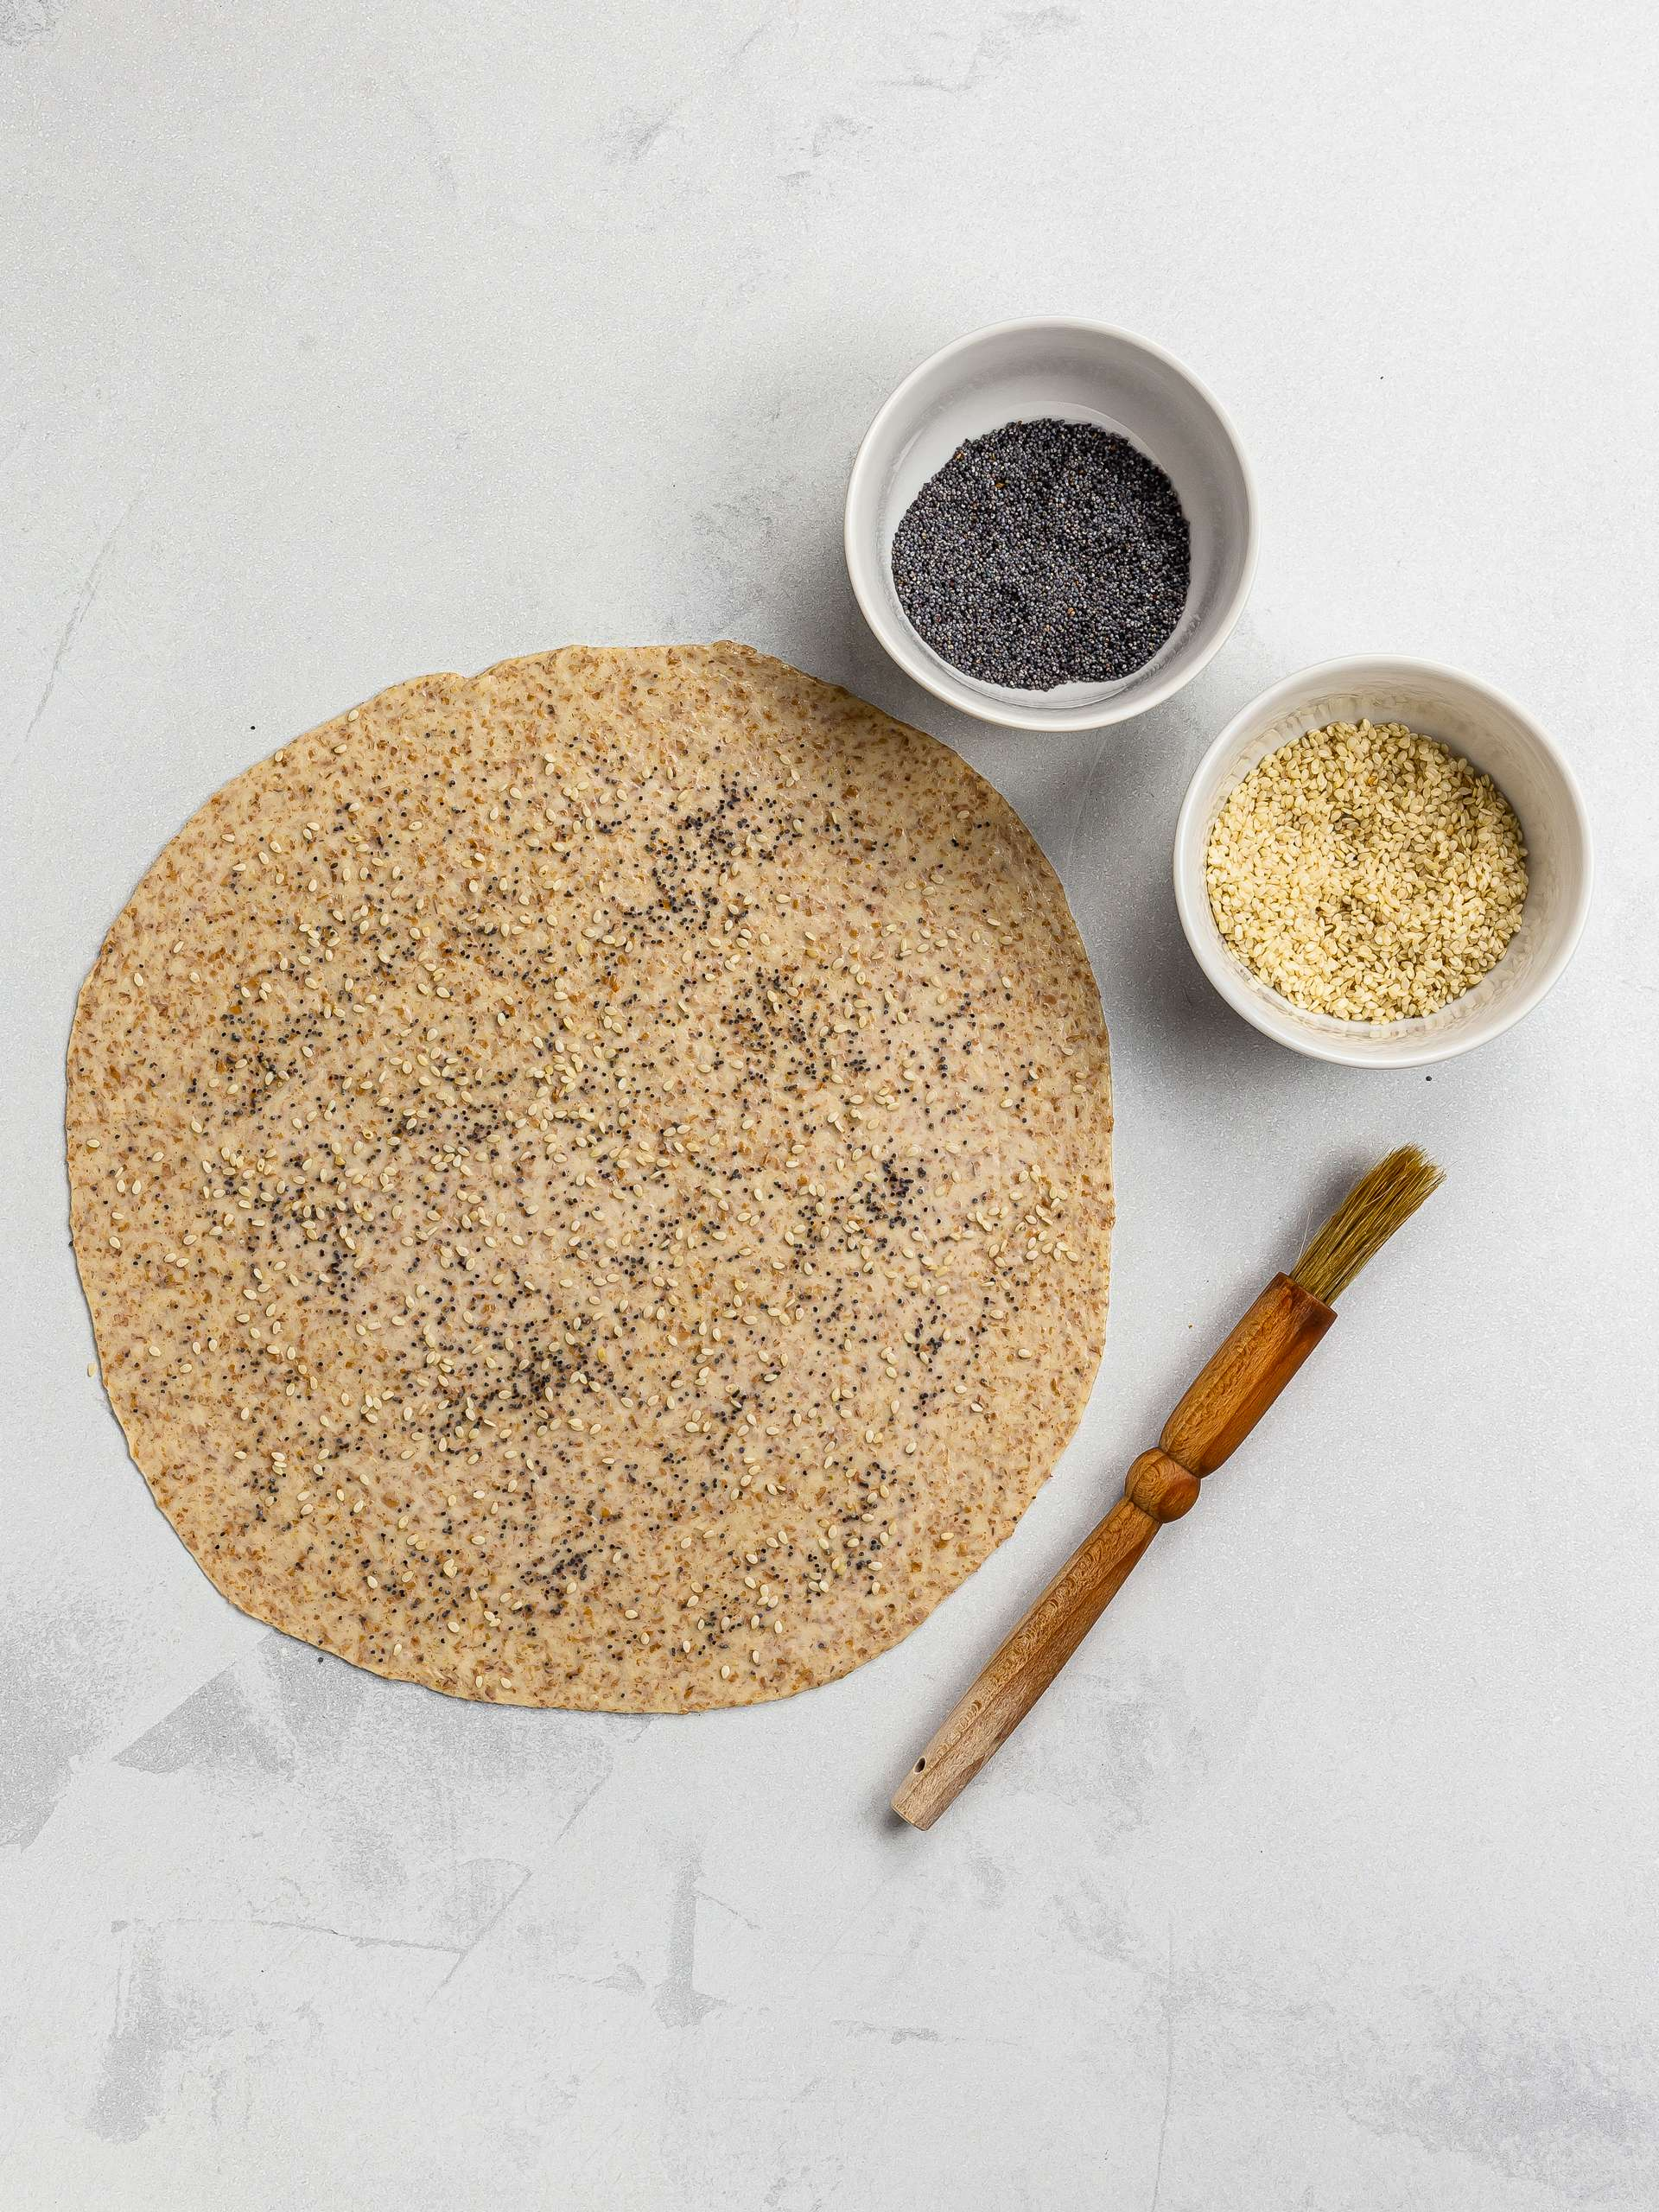 lavash flatbread with poppy and sesame seeds